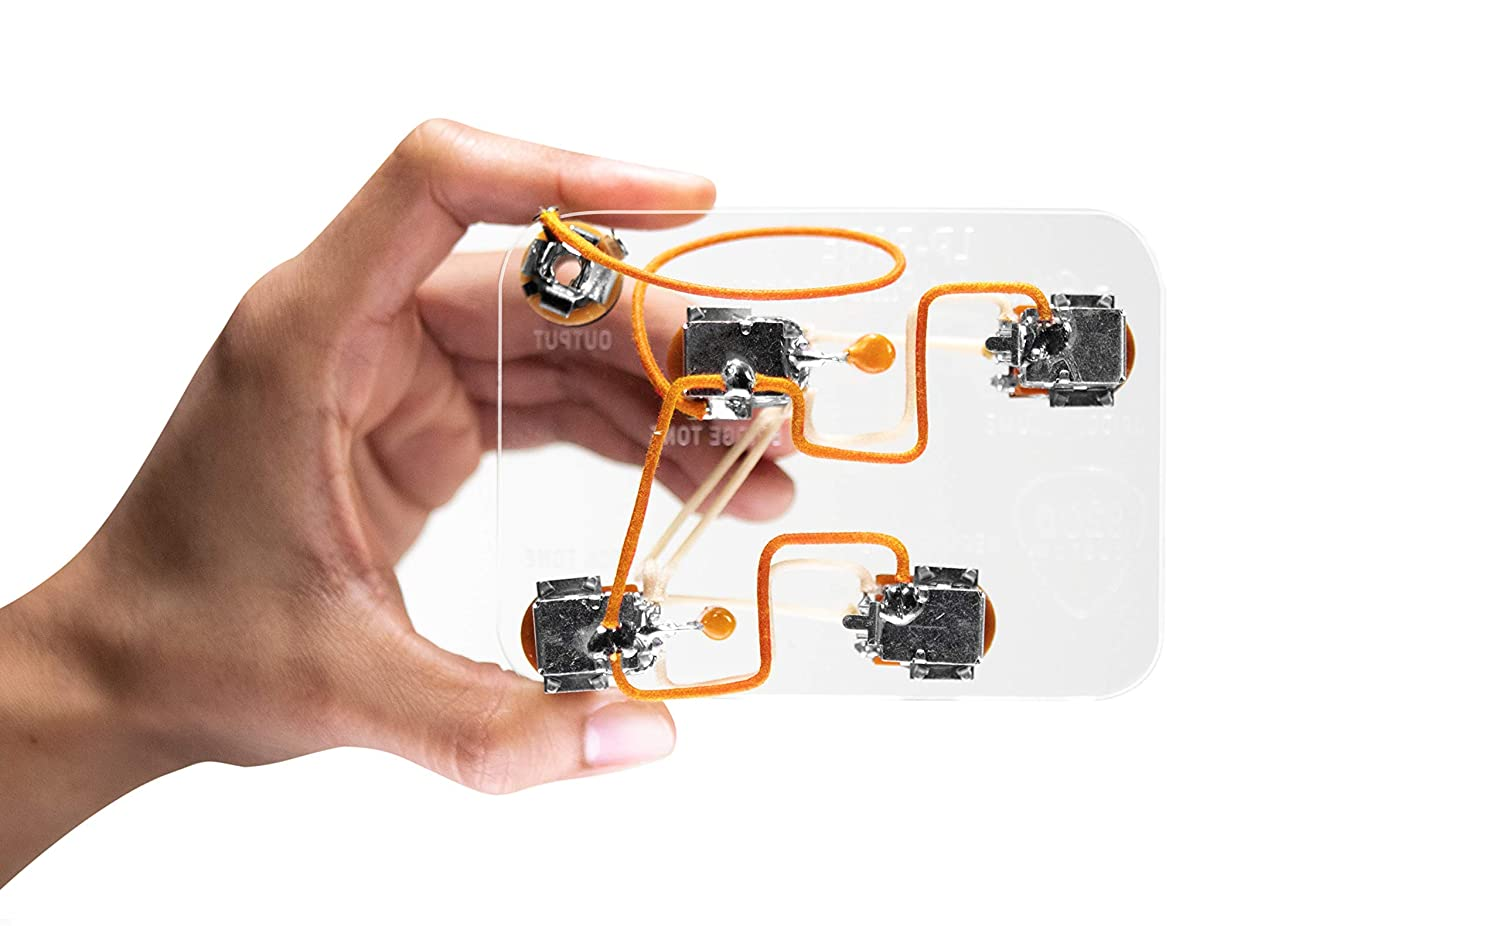 920d Custom Shop Les Paul Jimmy Page Wiring Harness W Switchcraft For Toggle 920 6361 Christmas Gift Store